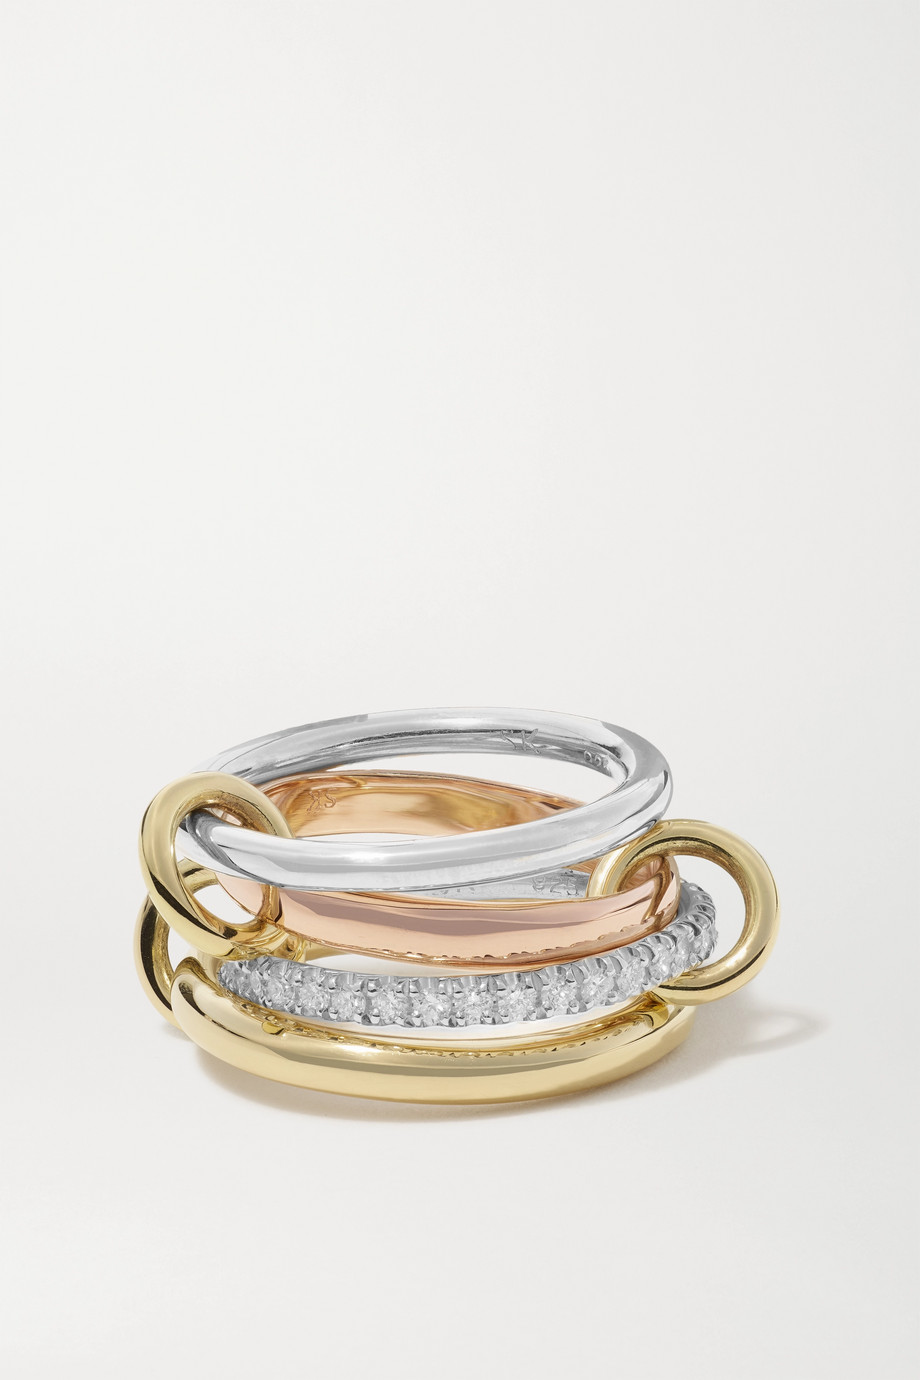 Spinelli Kilcollin Cancer Deux set of four 18-karat yellow and rose gold and sterling silver diamond rings